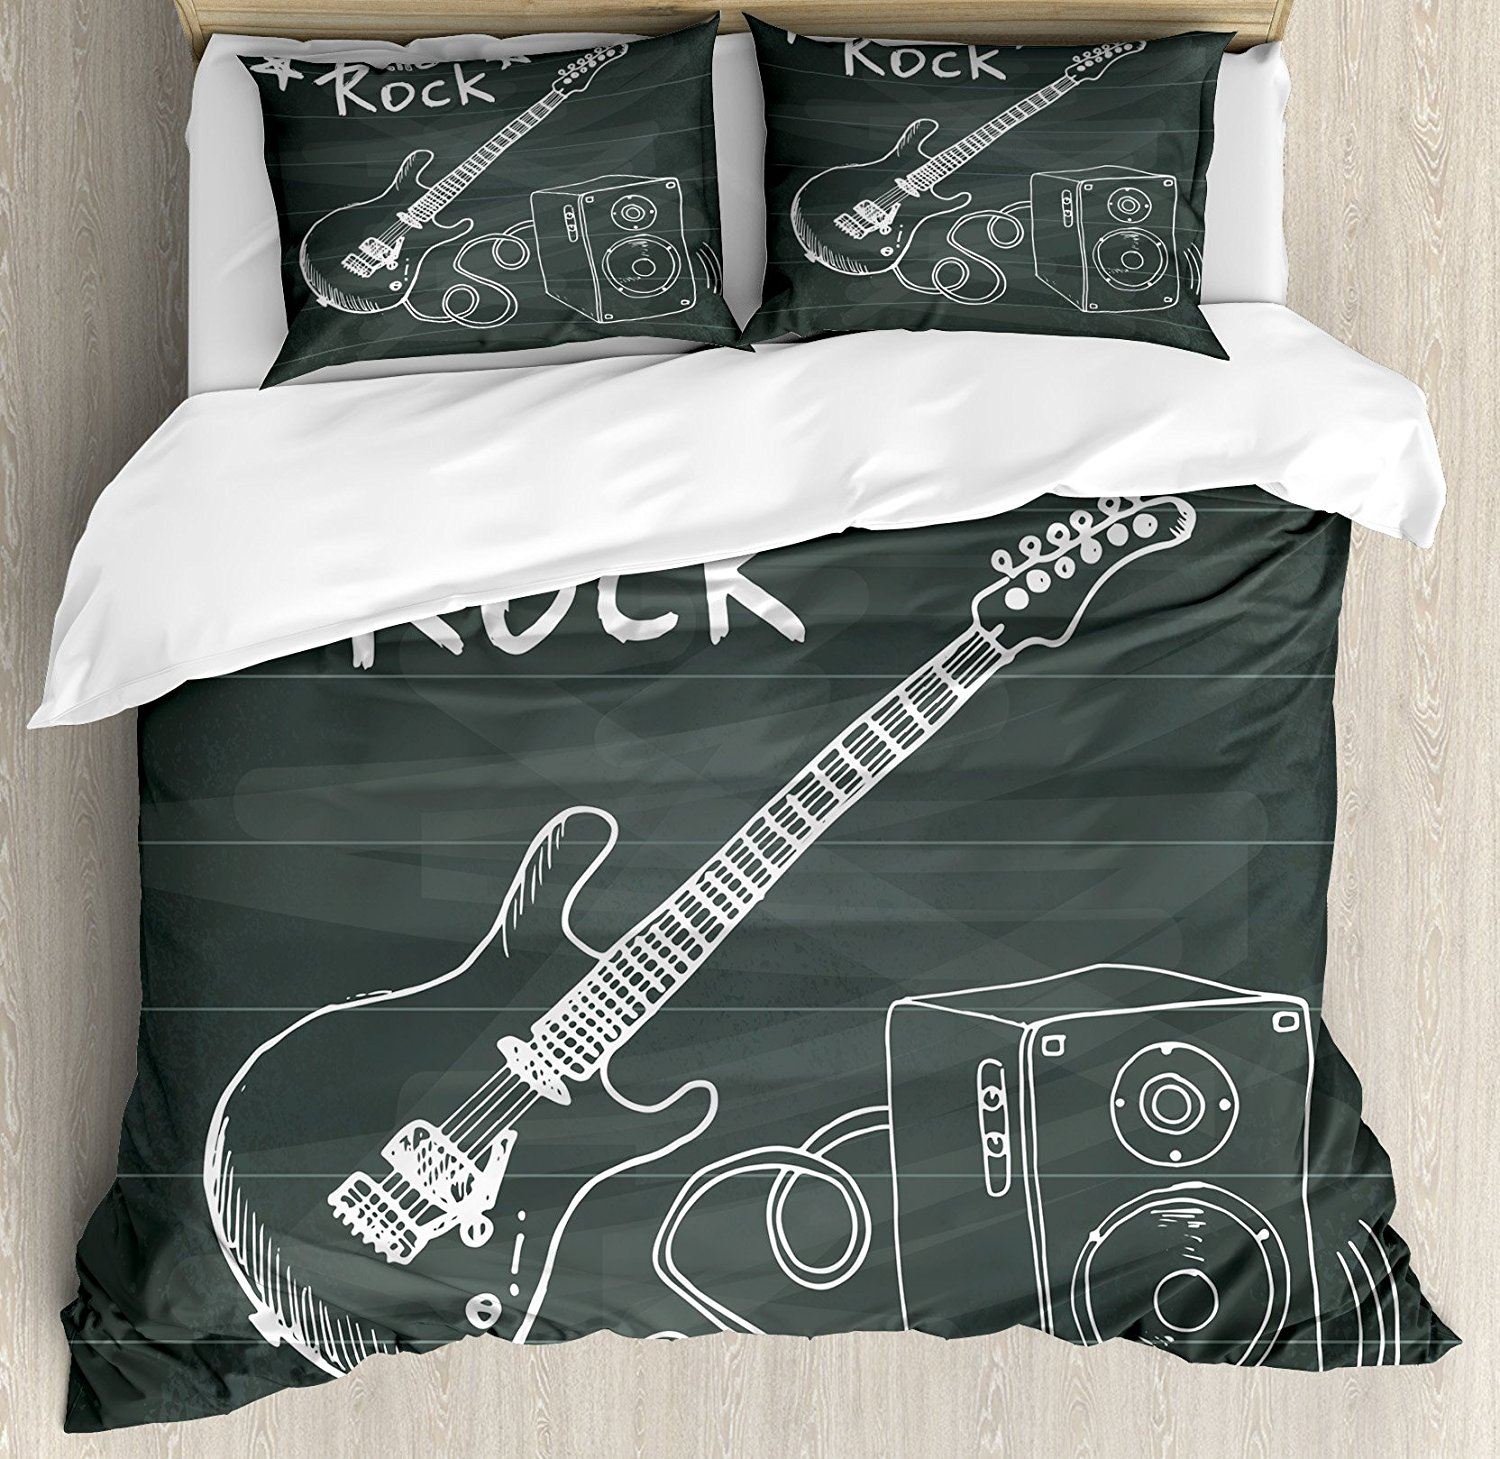 Guitar Duvet Cover Set, Love The Rock Music Themed Sketch Art Sound Box and Text on Chalkboard, 4 Piece Bedding Set